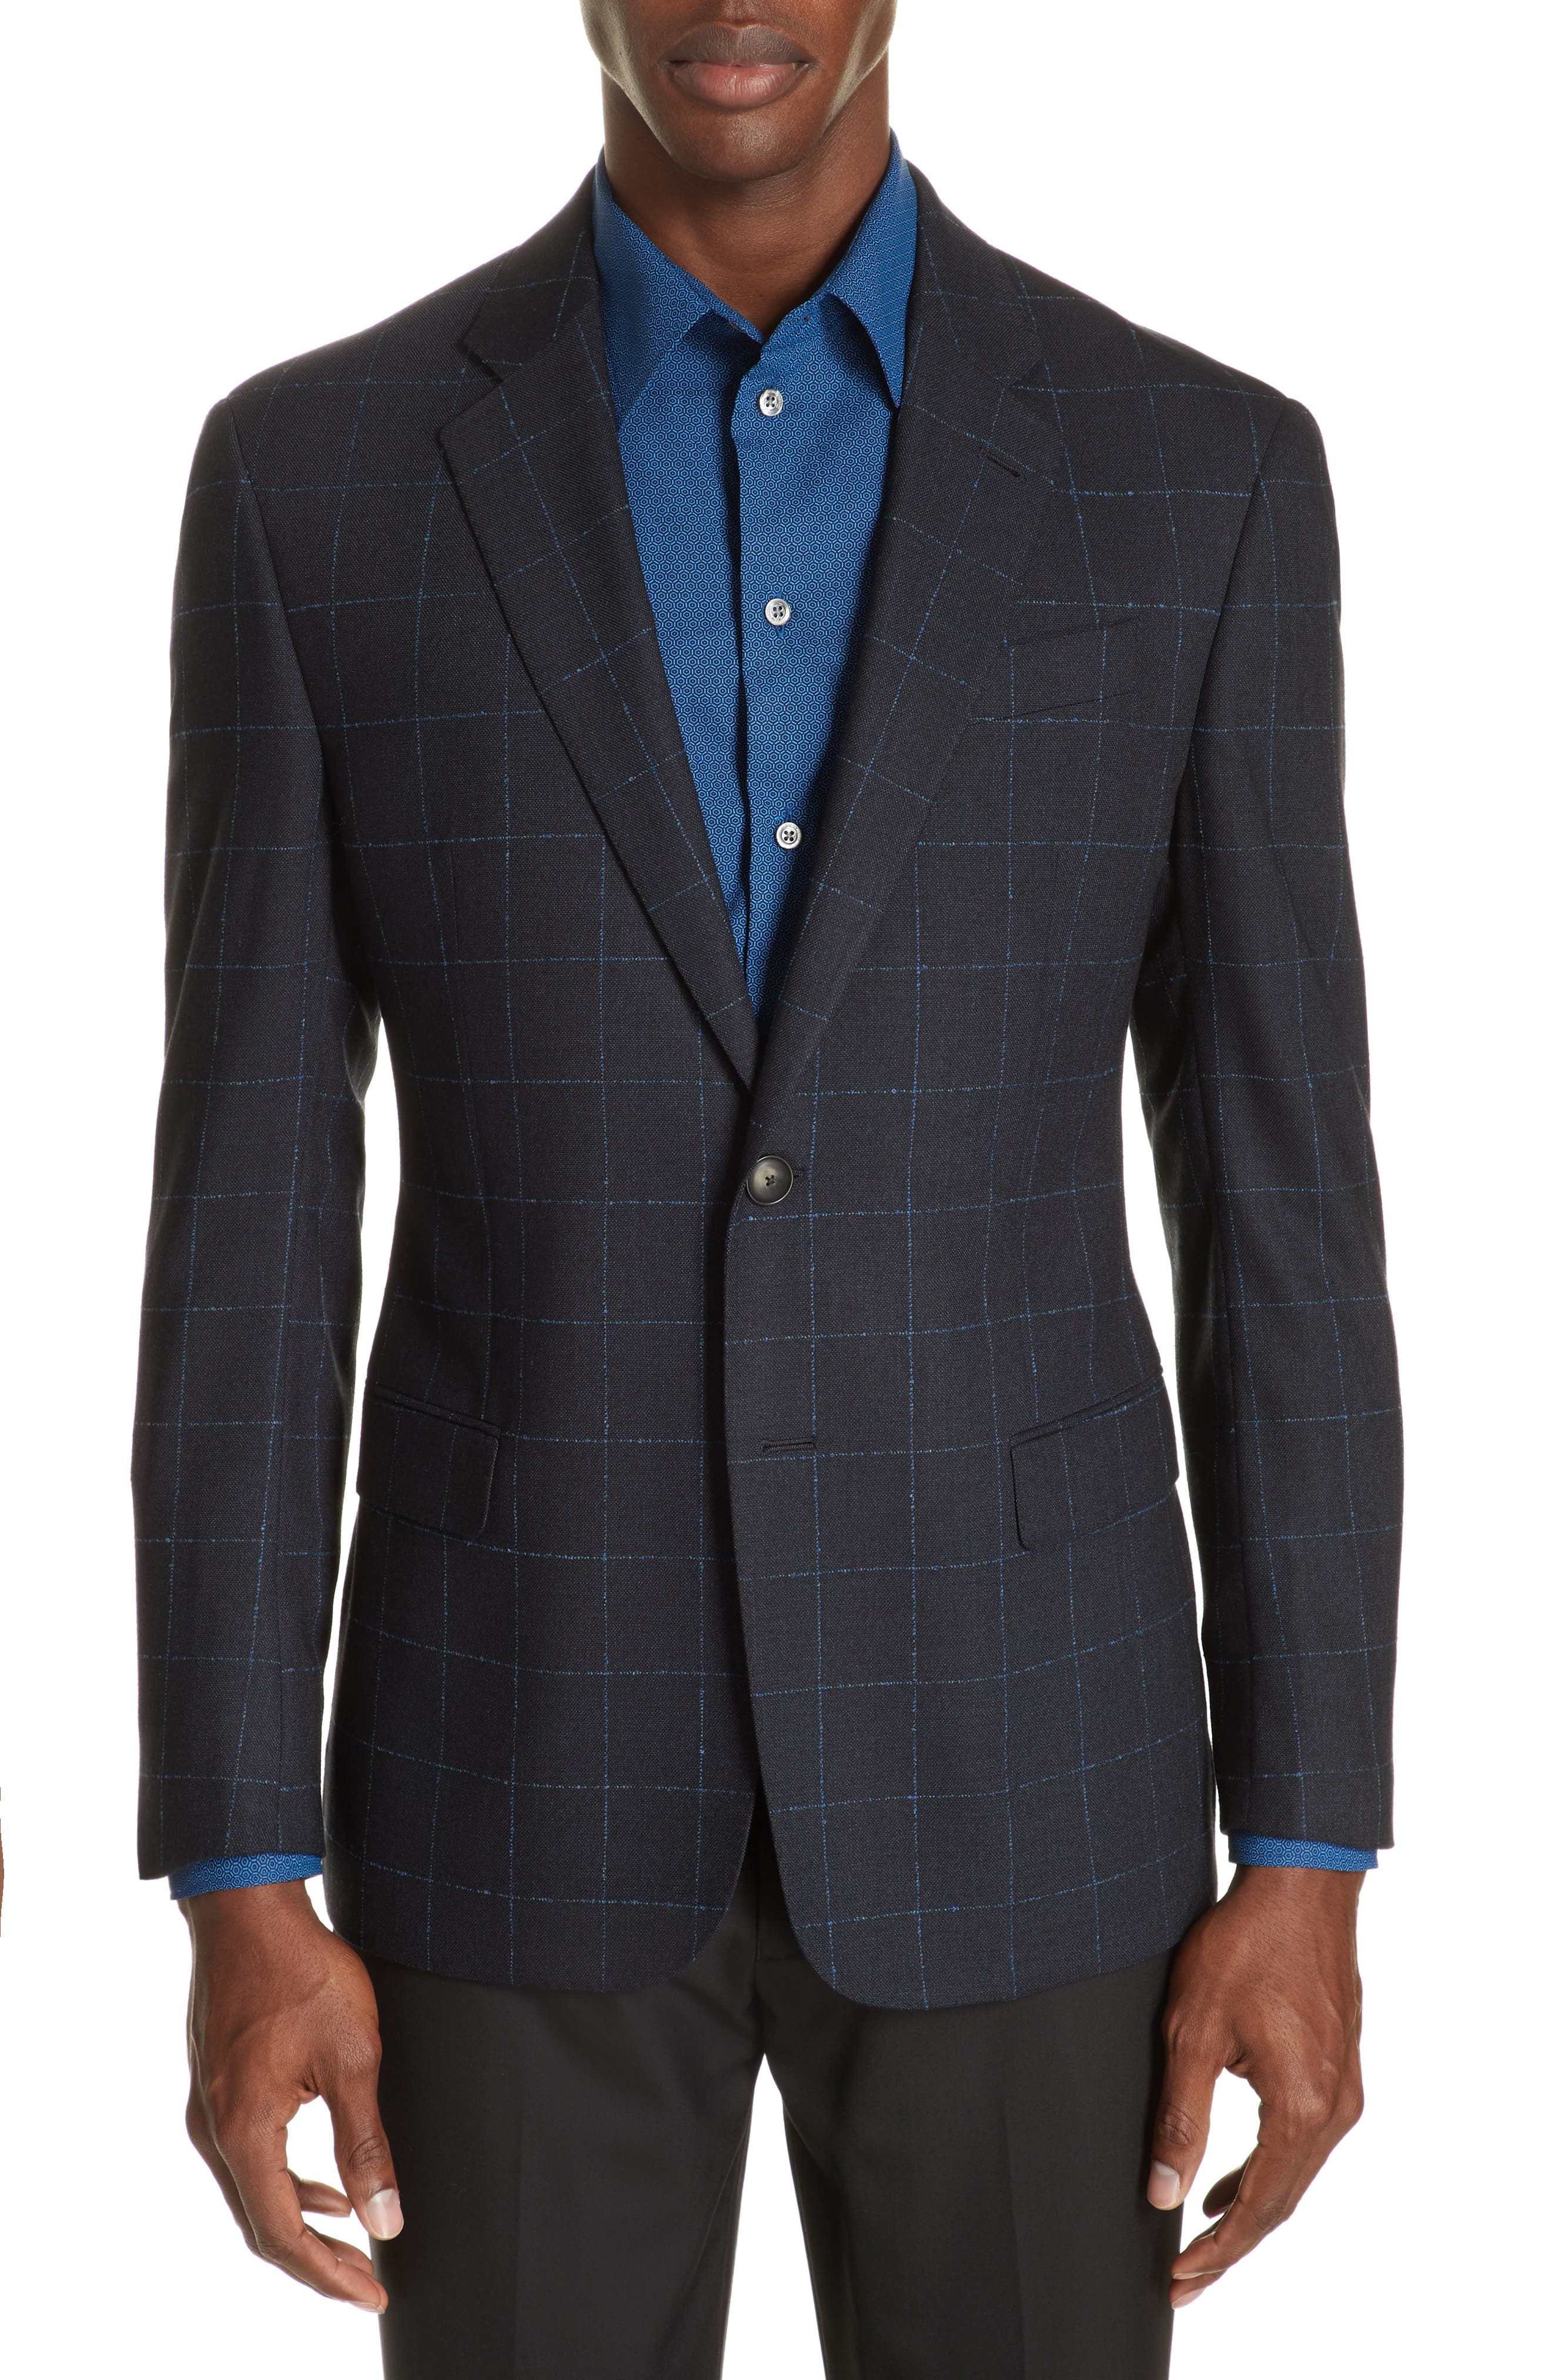 G-Line Trim Fit Stretch Windowpane Sport Coat,                             Main thumbnail 1, color,                             NAVY